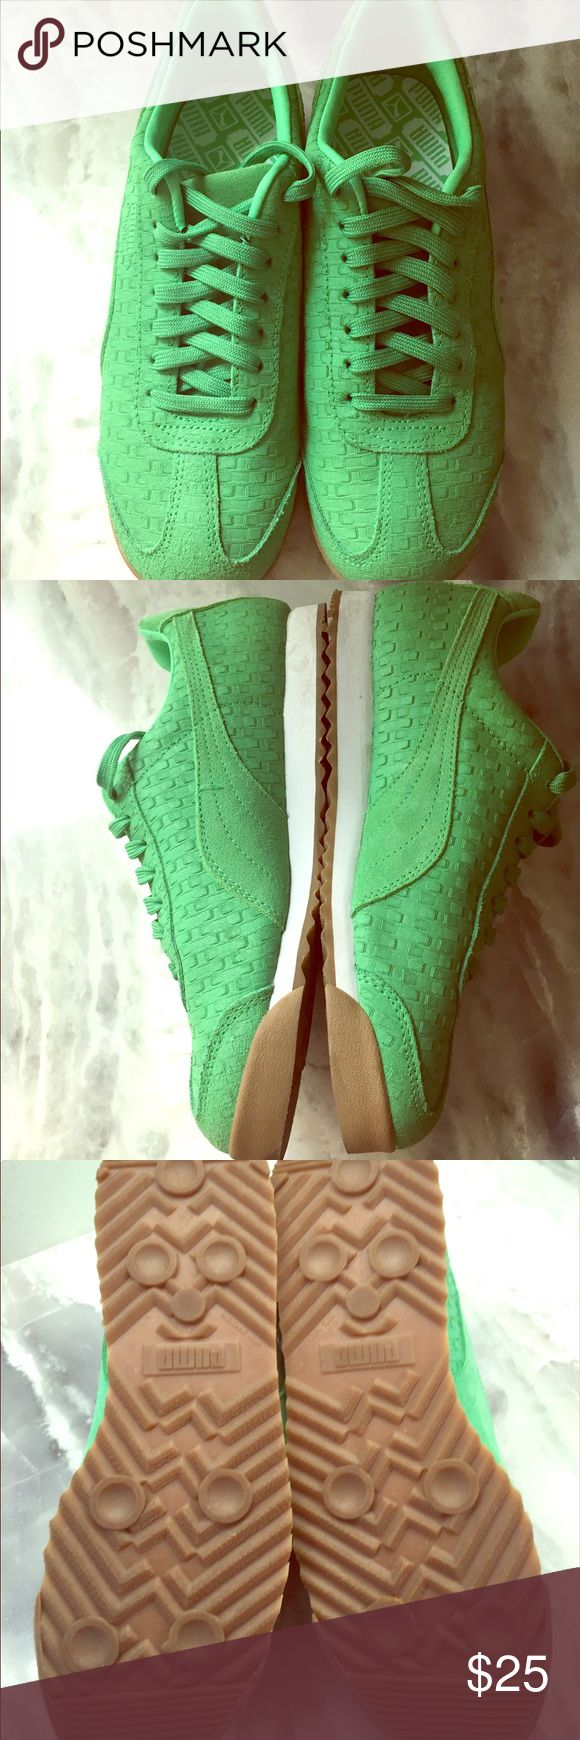 Jade Green PUMA sneakers size 8 Closet clean out! I love the color of these shoes, so bright and fun! I have worn them two time but otherwise in perfect condition. If you need more pictures or information, please ask! I do not have the original box but they will be sent in a secured box. Similar shoes are selling for $34.95 on amazon. Puma Shoes Sneakers